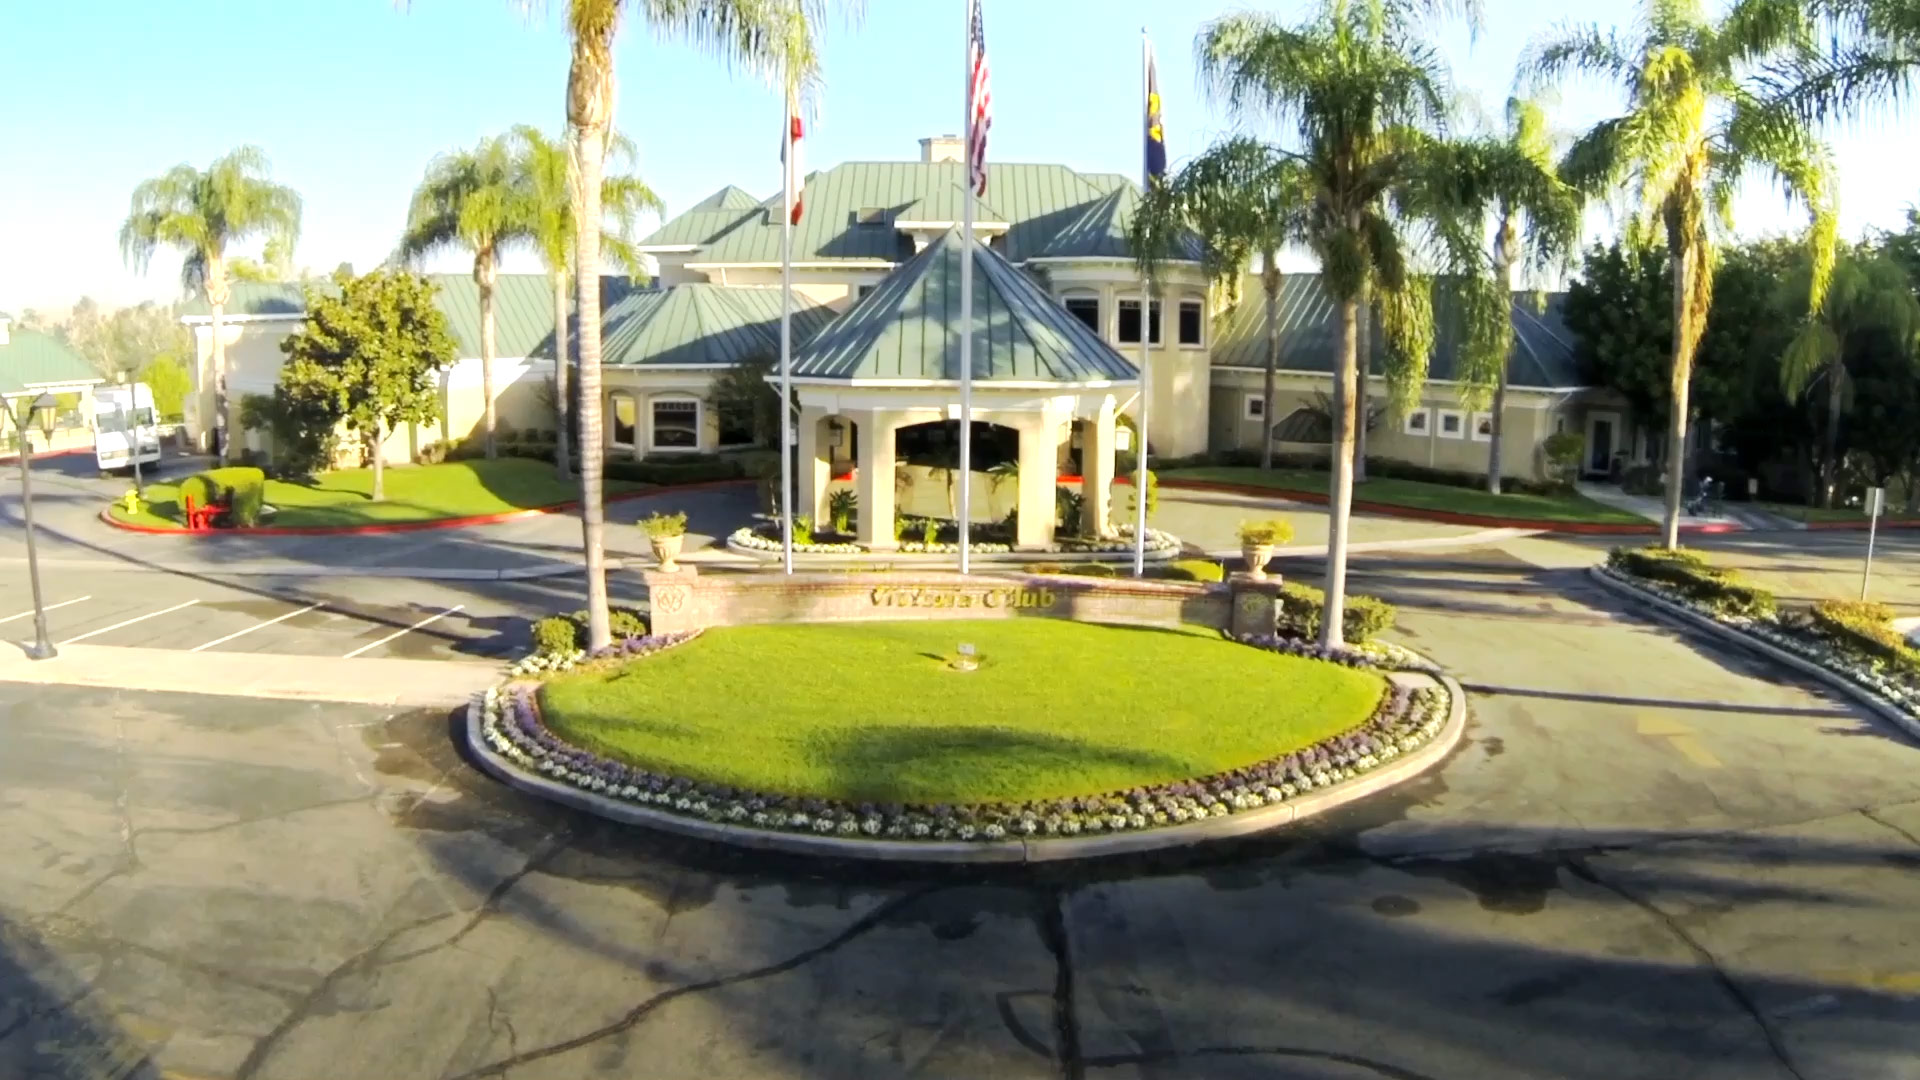 Image result for Victoria Club, 2521 Arroyo Dr, Riverside